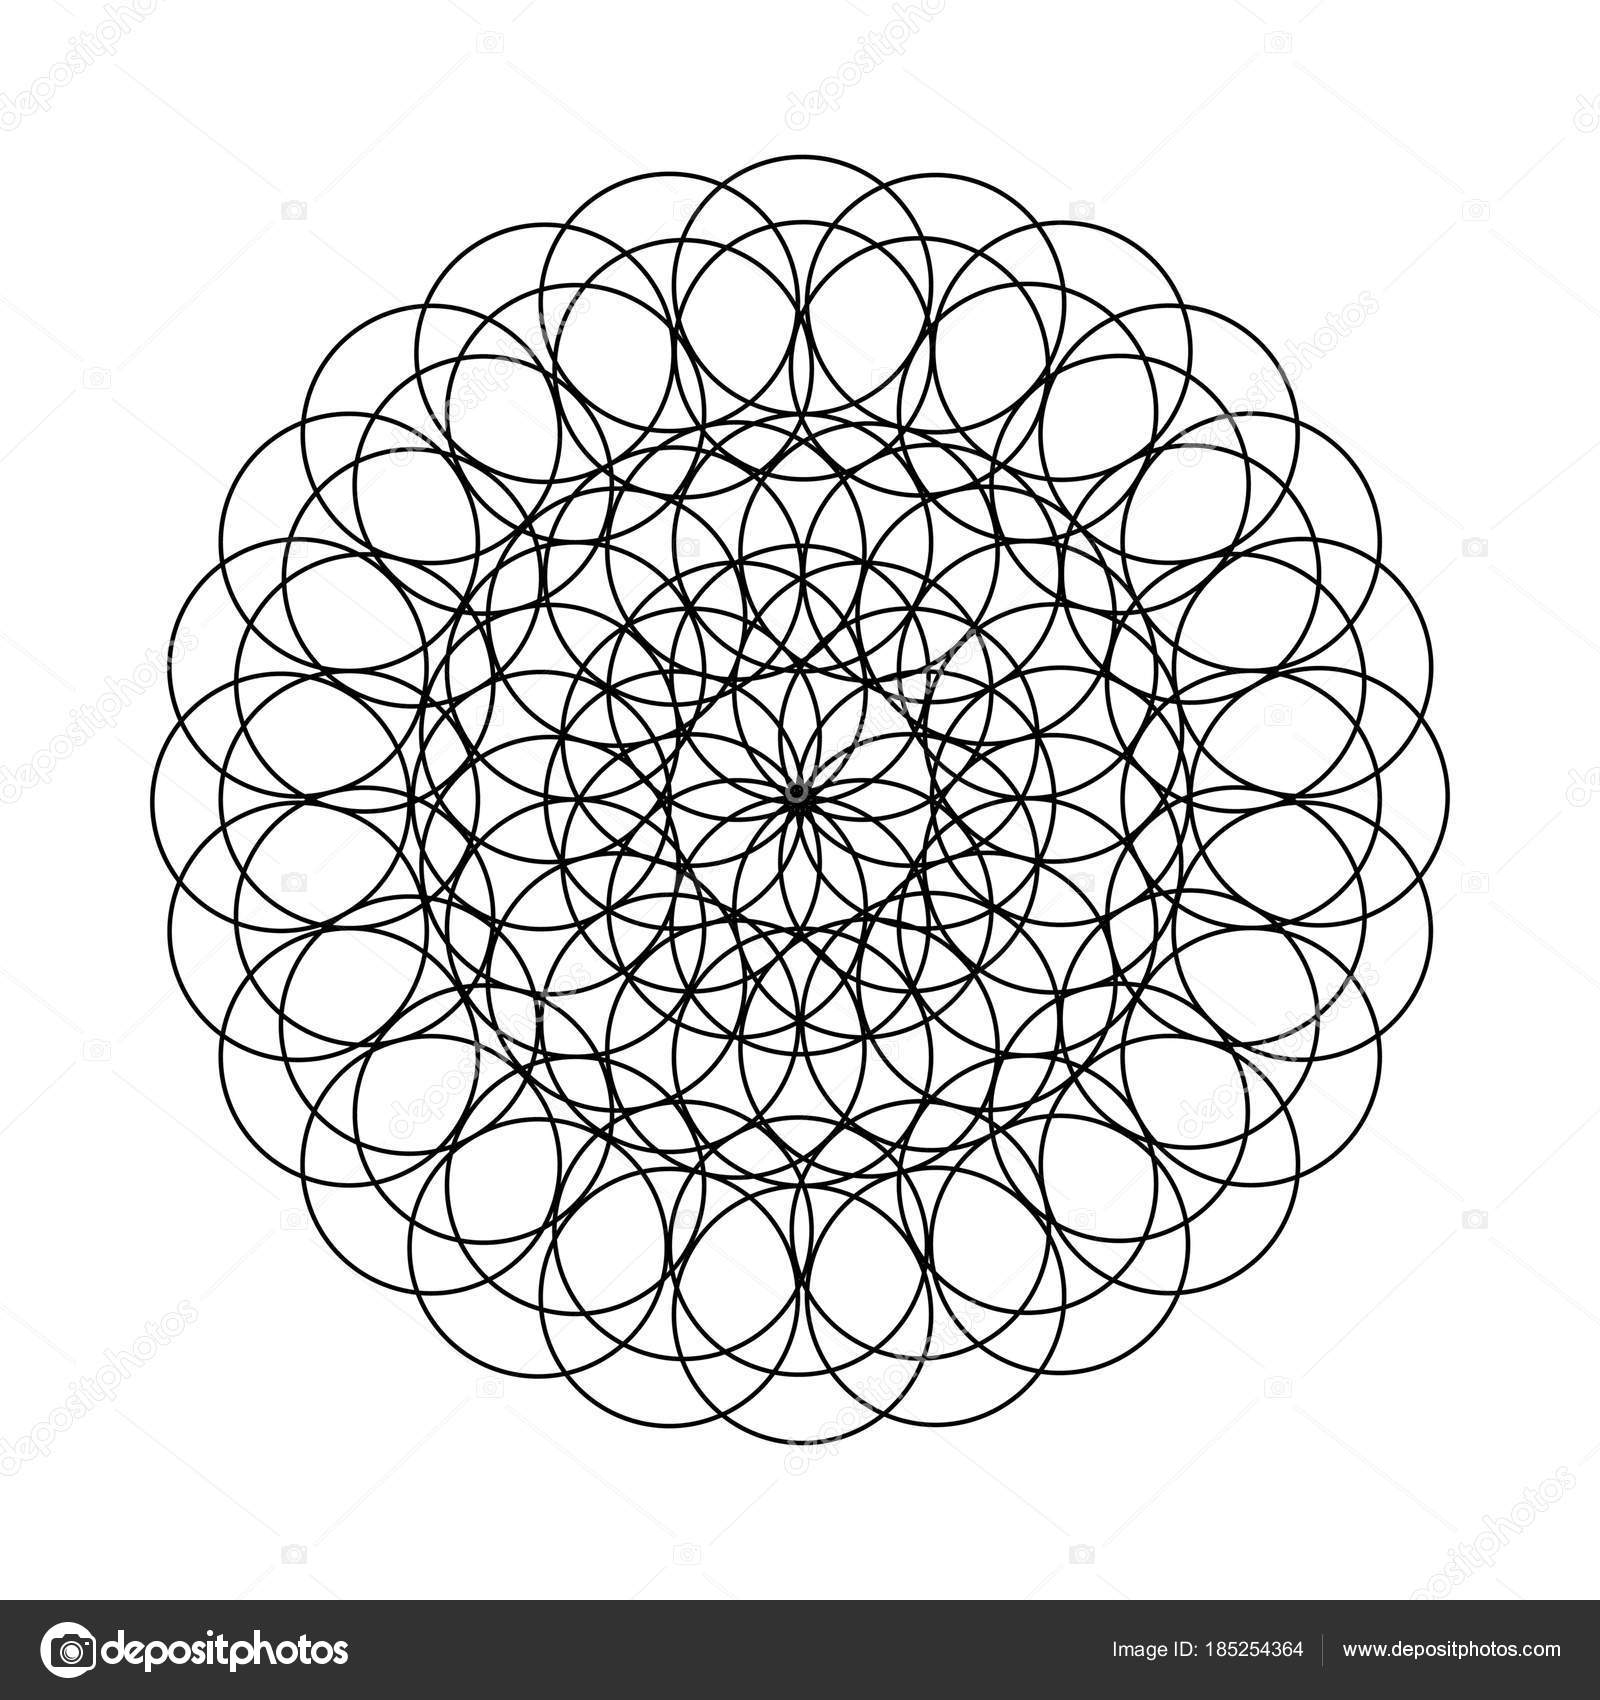 Mandala Flower Circles Coloring Book Image Contains Imperfections